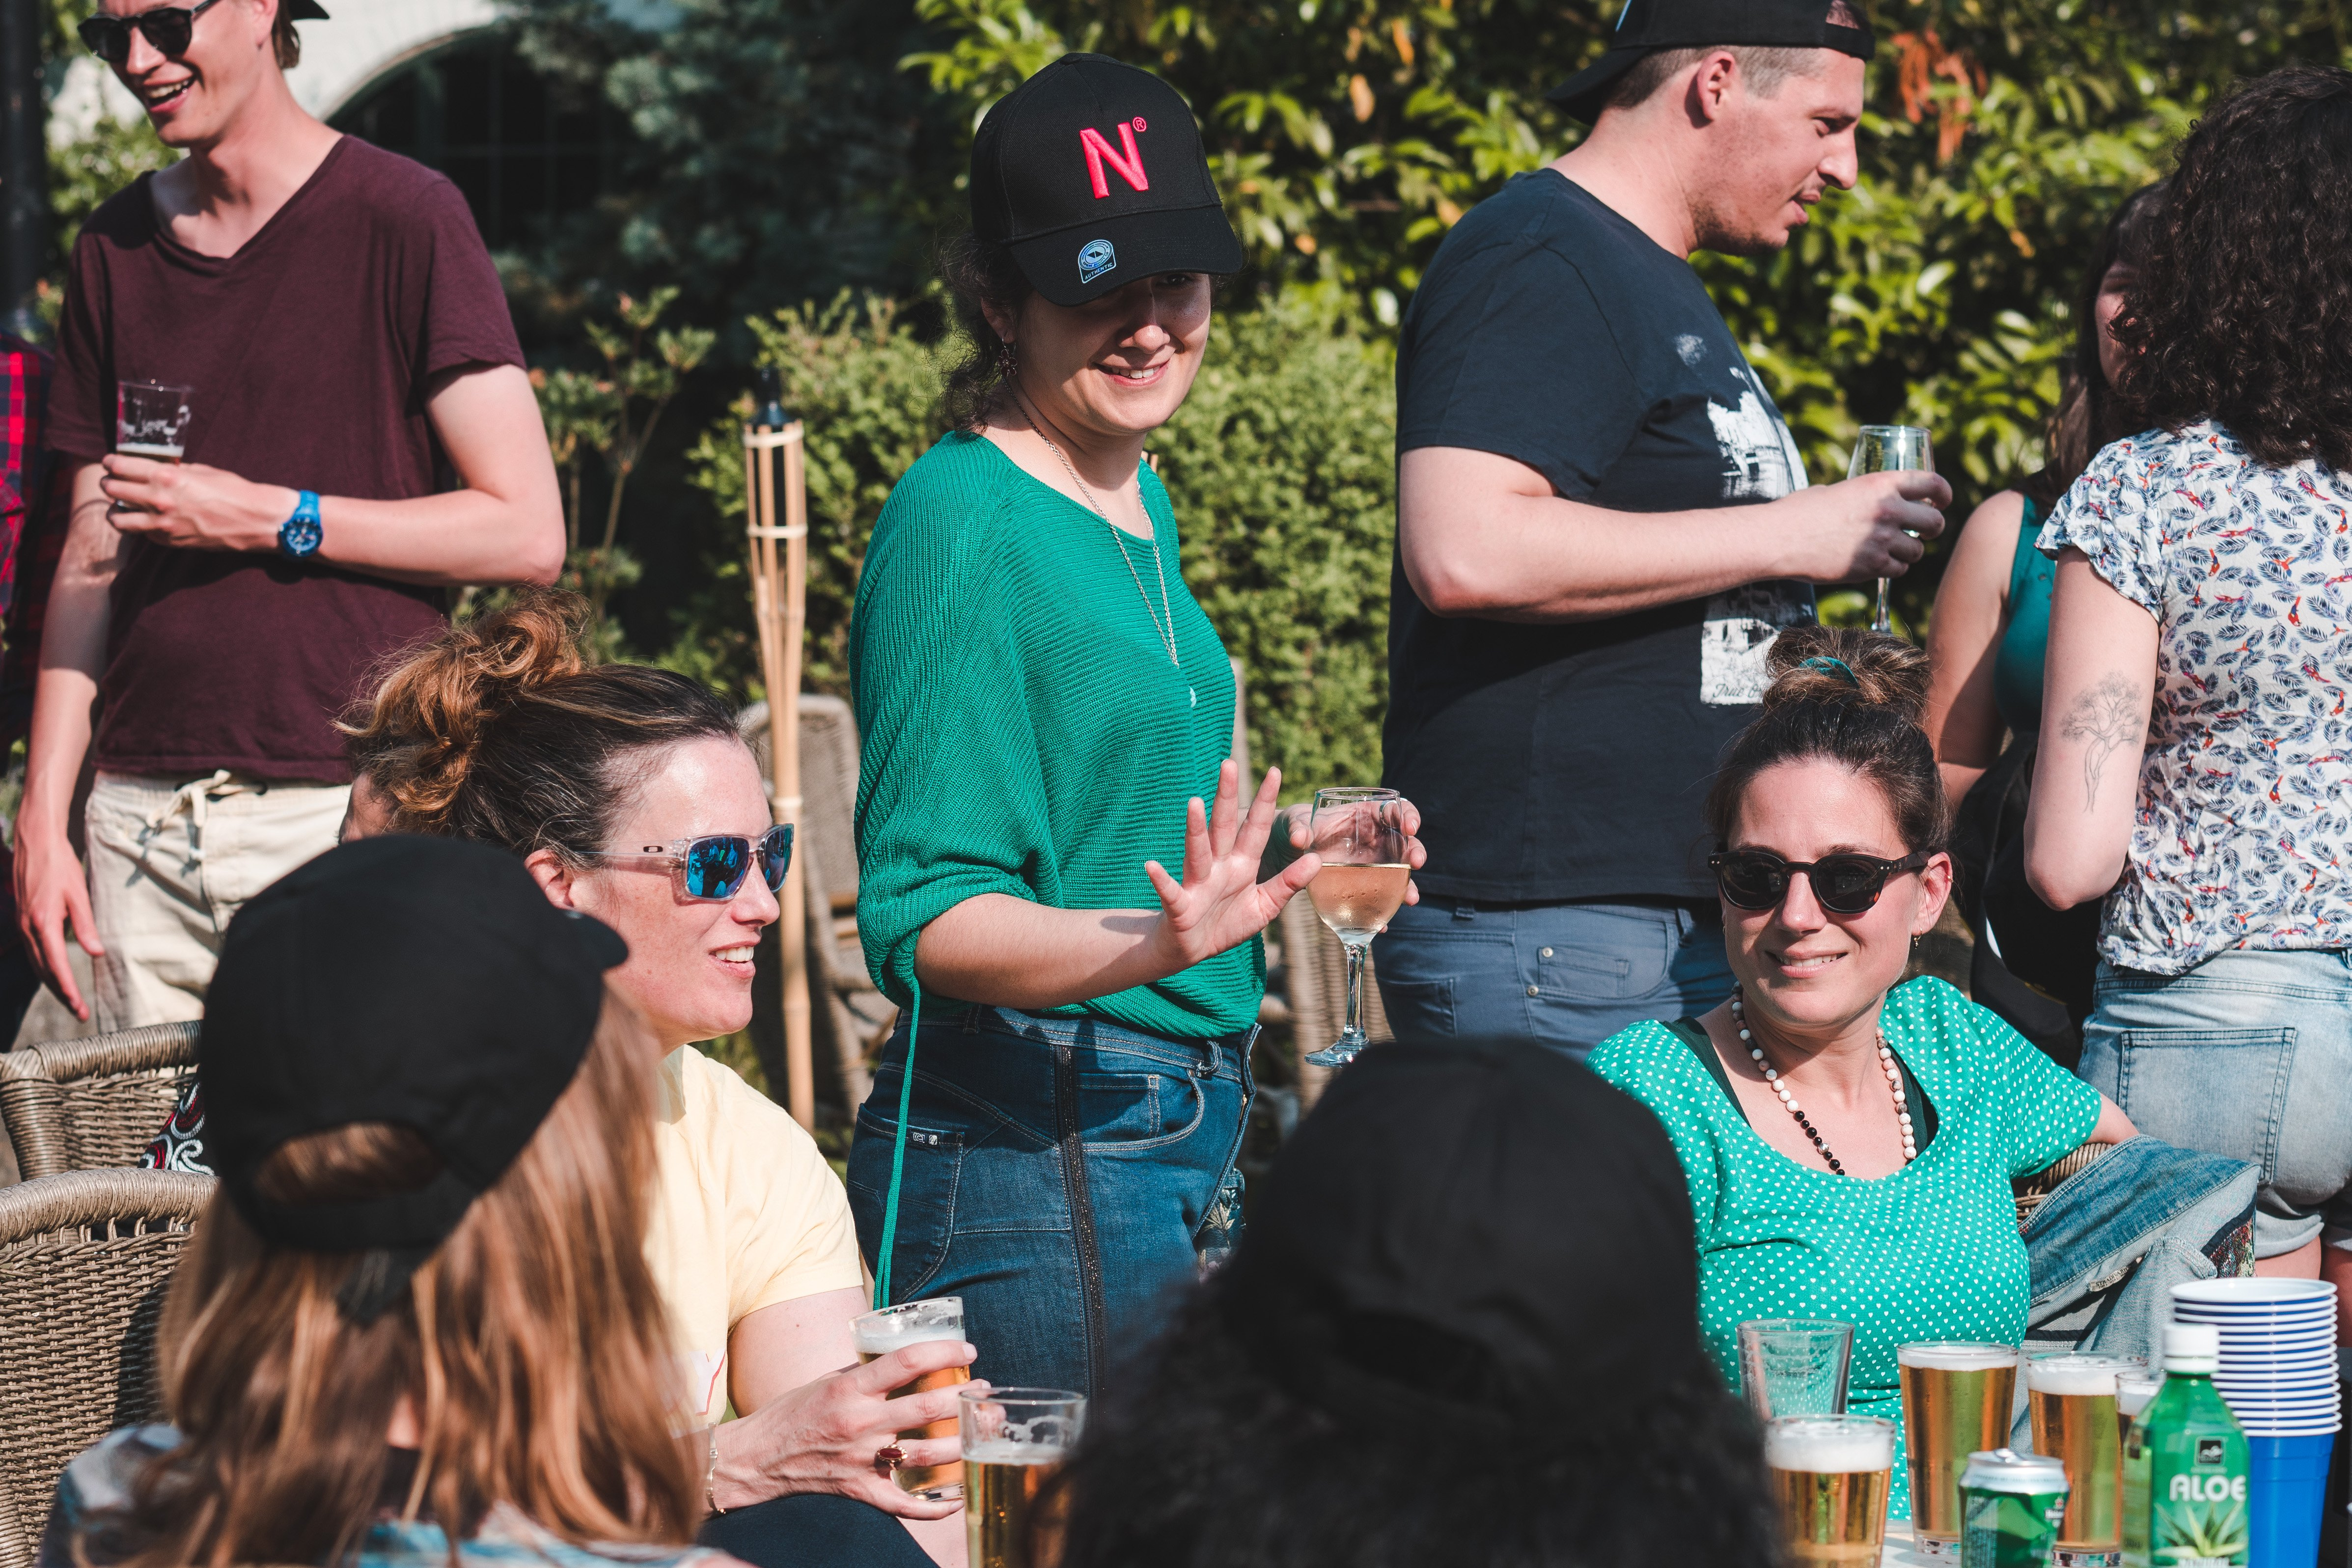 Rita, our Recruitment Lead, is talking to some of our colleagues during our Summer Event of 2019. They're sitting in a nice round table in the sun, drinking some beers and using the opportunity to connect to everyone.